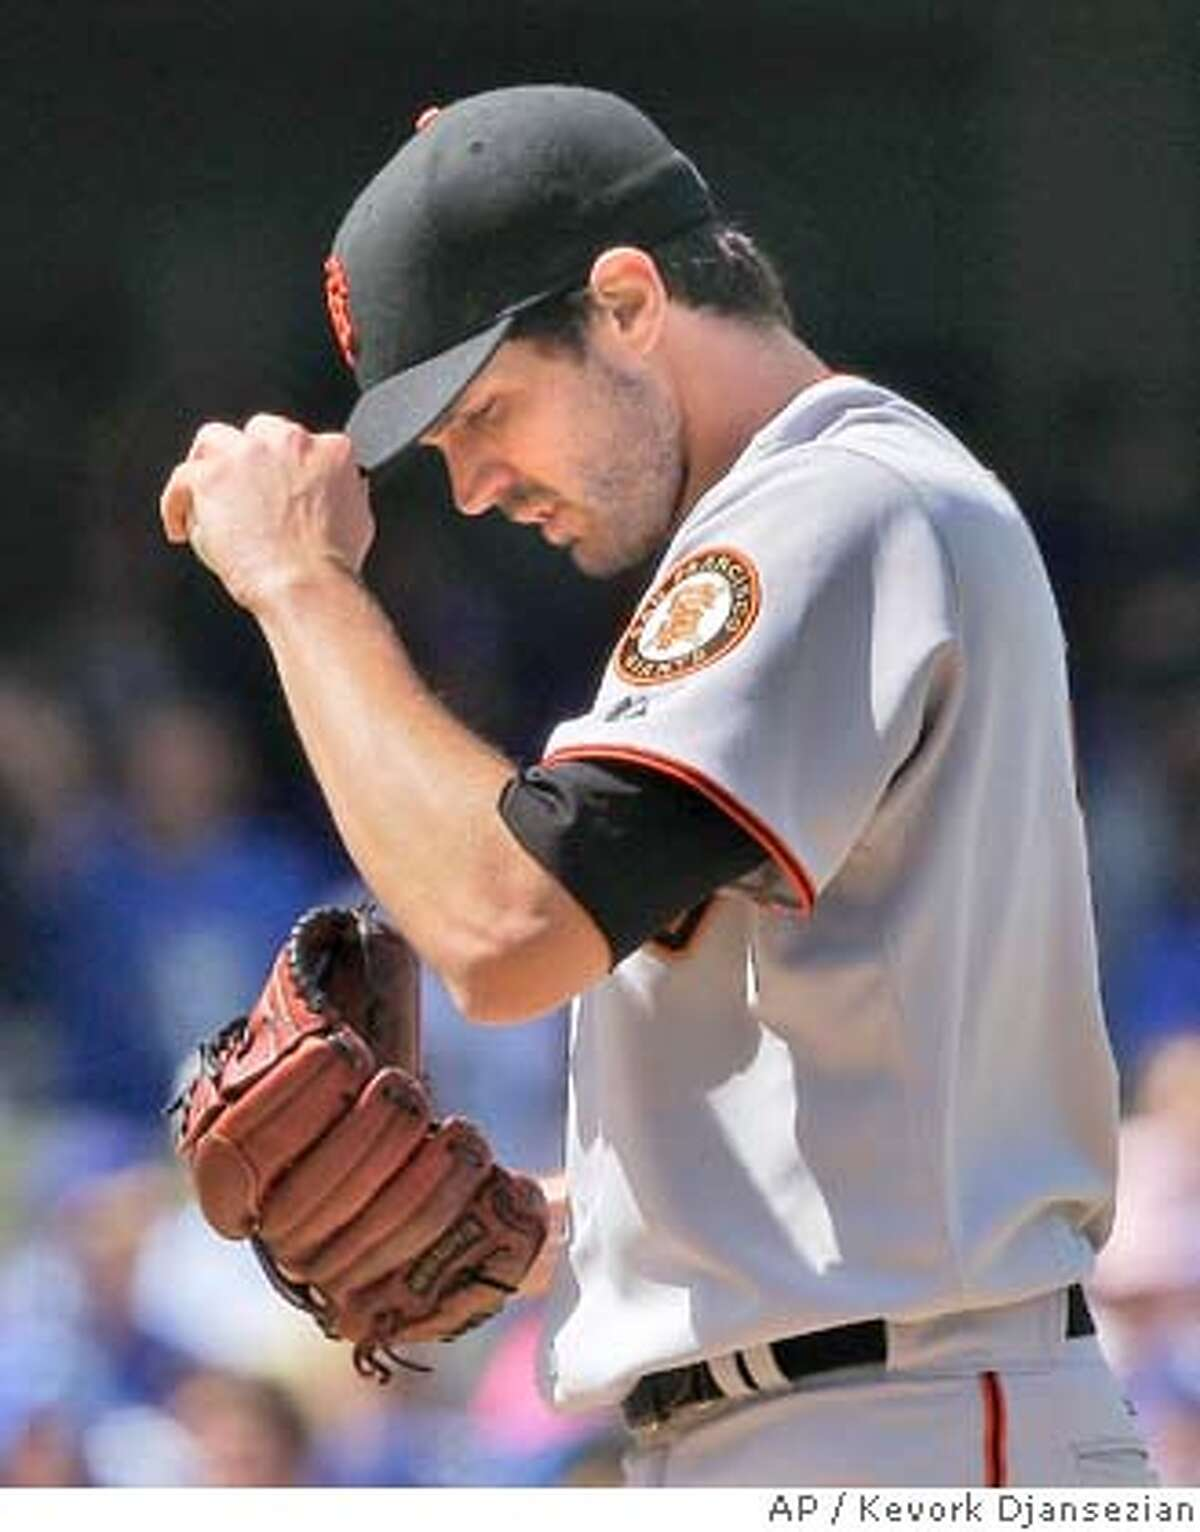 San Francisco Giants Barry Zito reacts as he pitches to Los Angeles Dodgers' Andruw Jones after giving up a two run homer to Jeff Kent during the first inning of the baseball game at Dodger Stadium in Los Angeles Monday, March 31, 2008. (AP Photo/Kevork Djansezian)